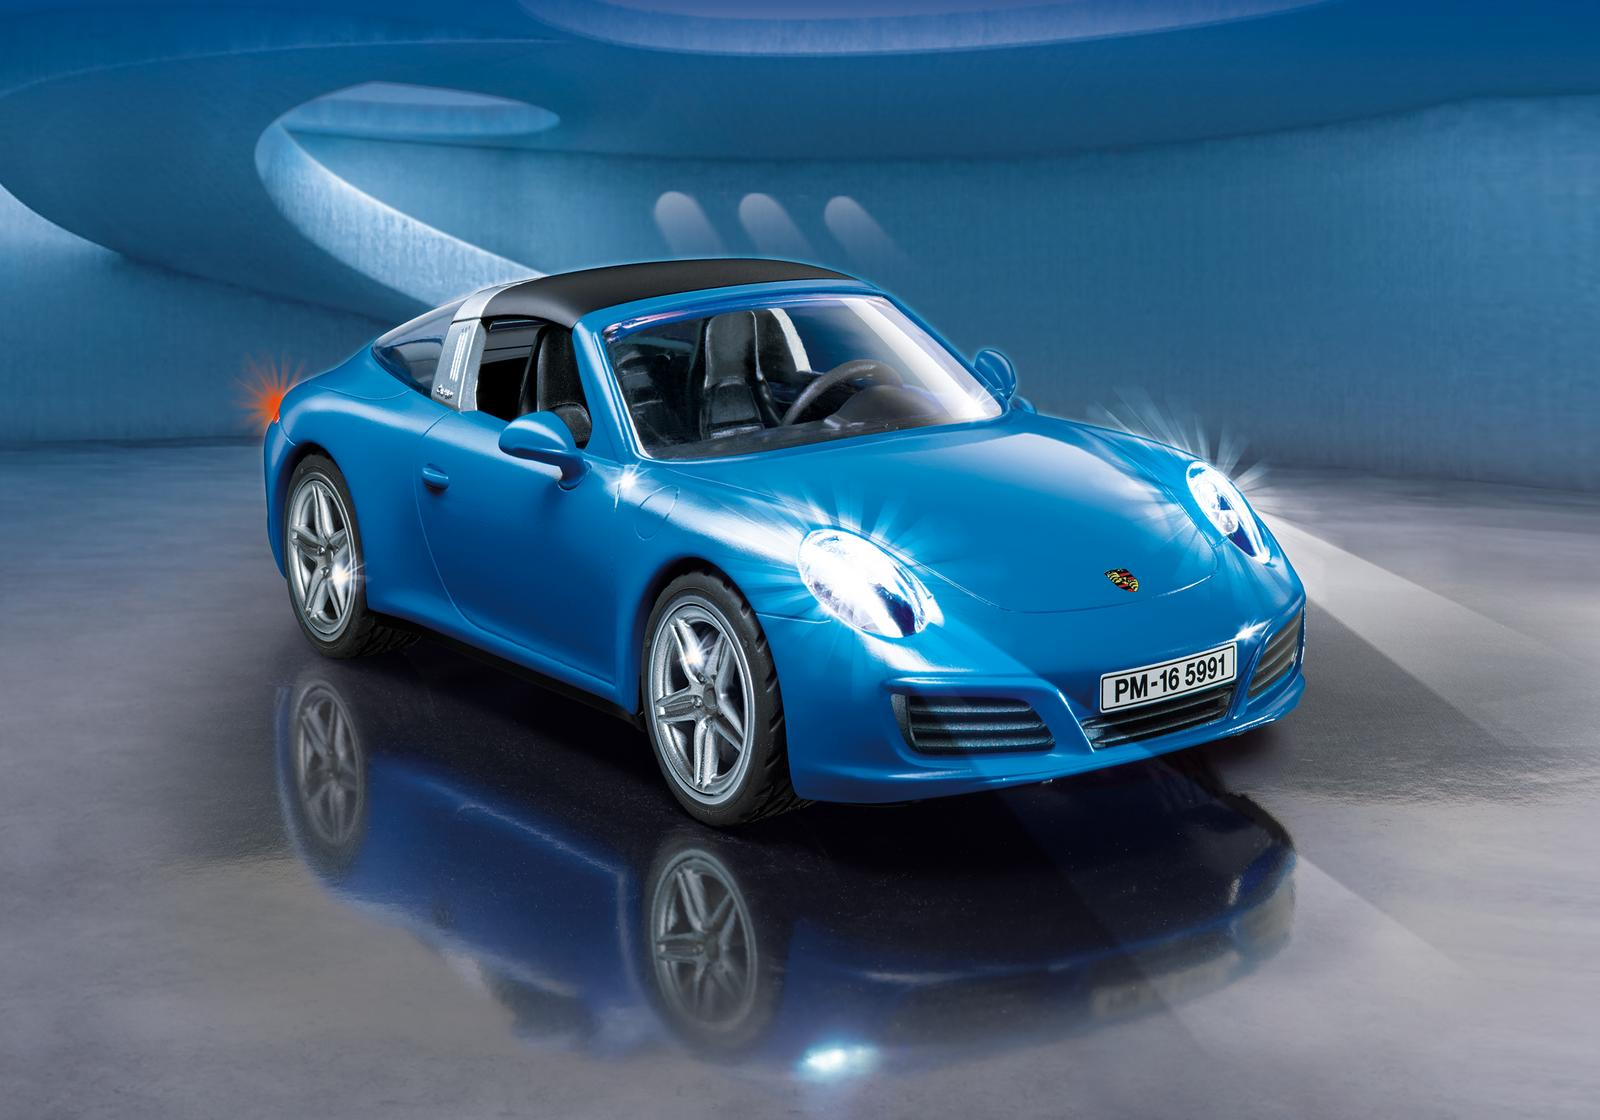 Porsche 911 Targa 4s By Playmobil Choice Gear